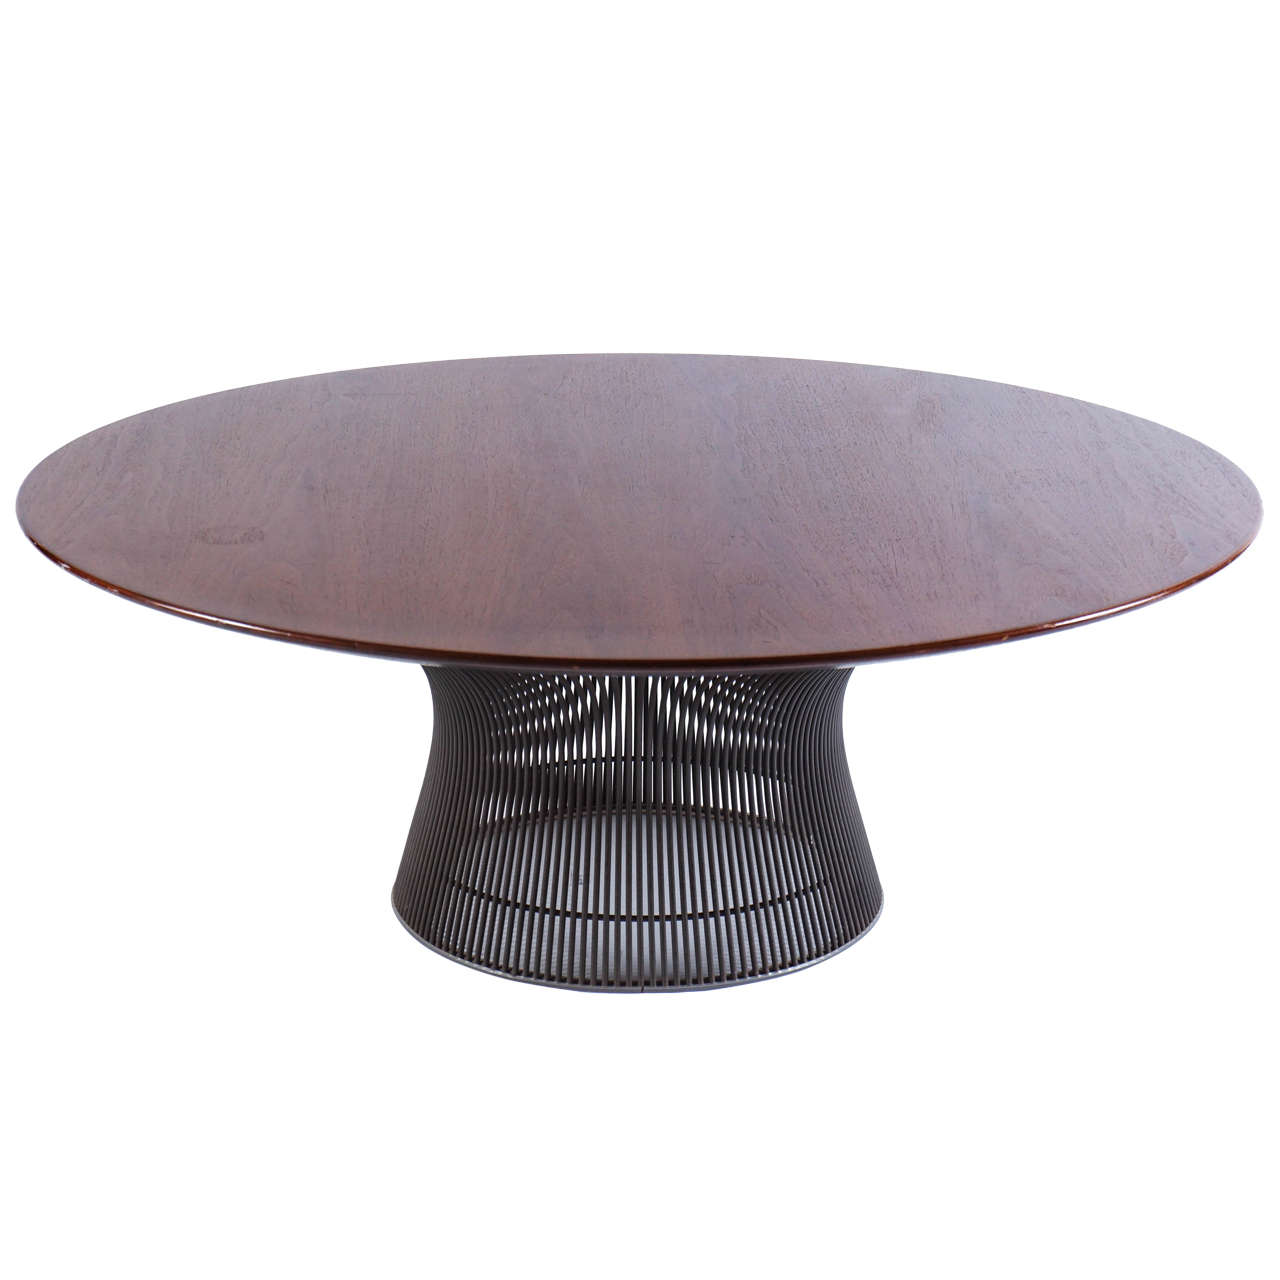 Walnut And Bronze Round Coffee Table By Warren Platner For Knoll At 1stdibs